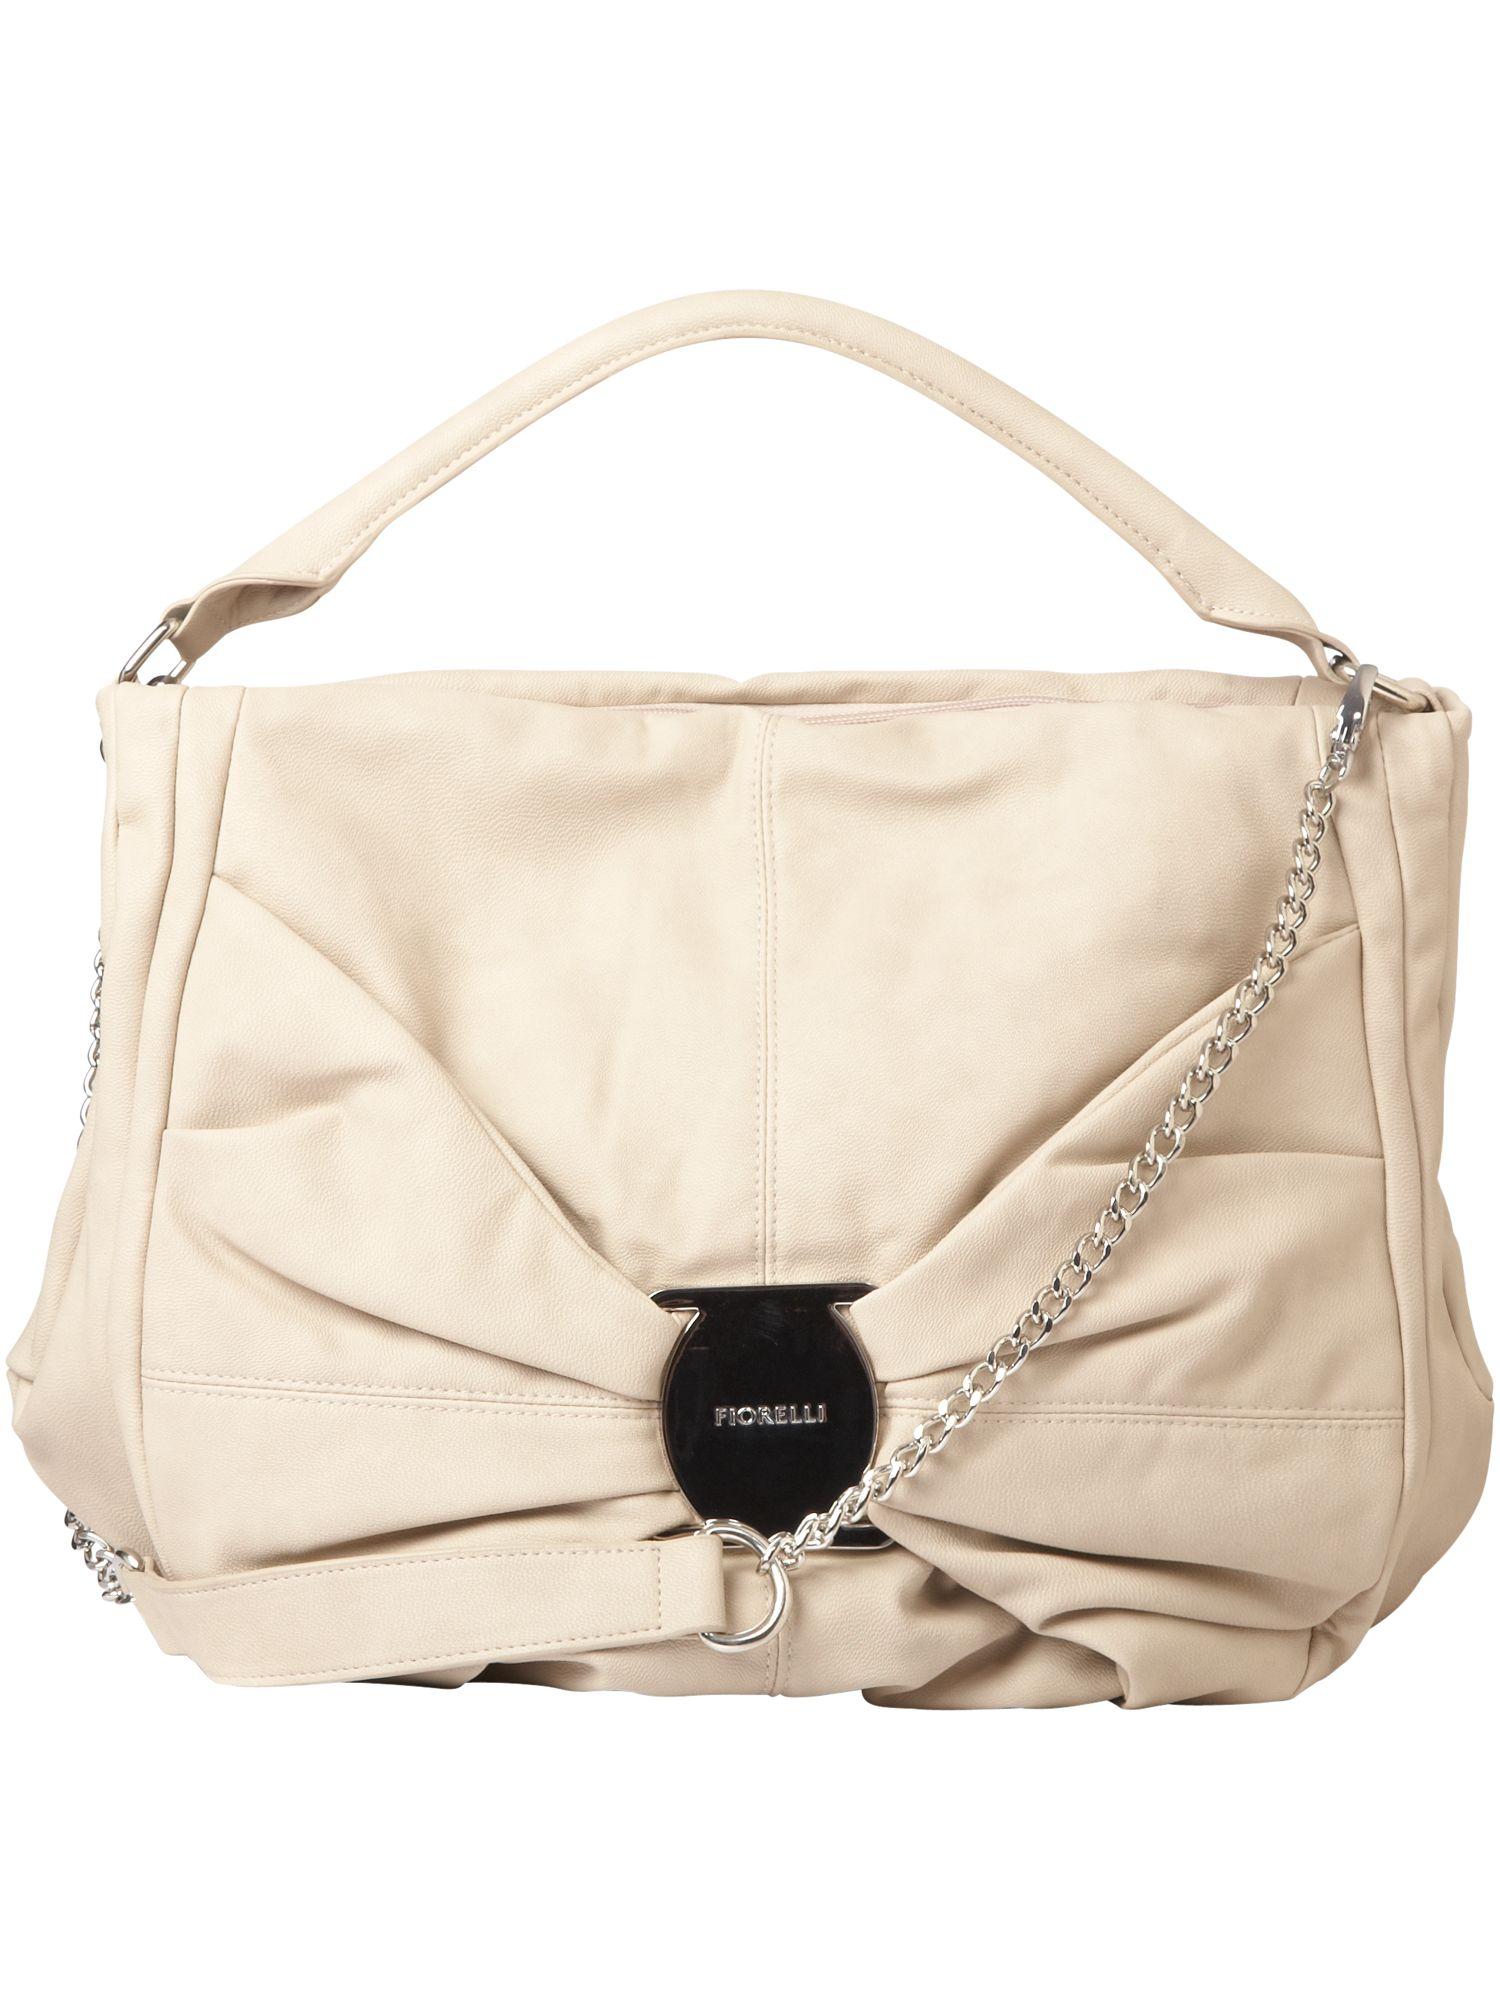 Fiorelli Honolulu Shoulder Hobo Bag product image